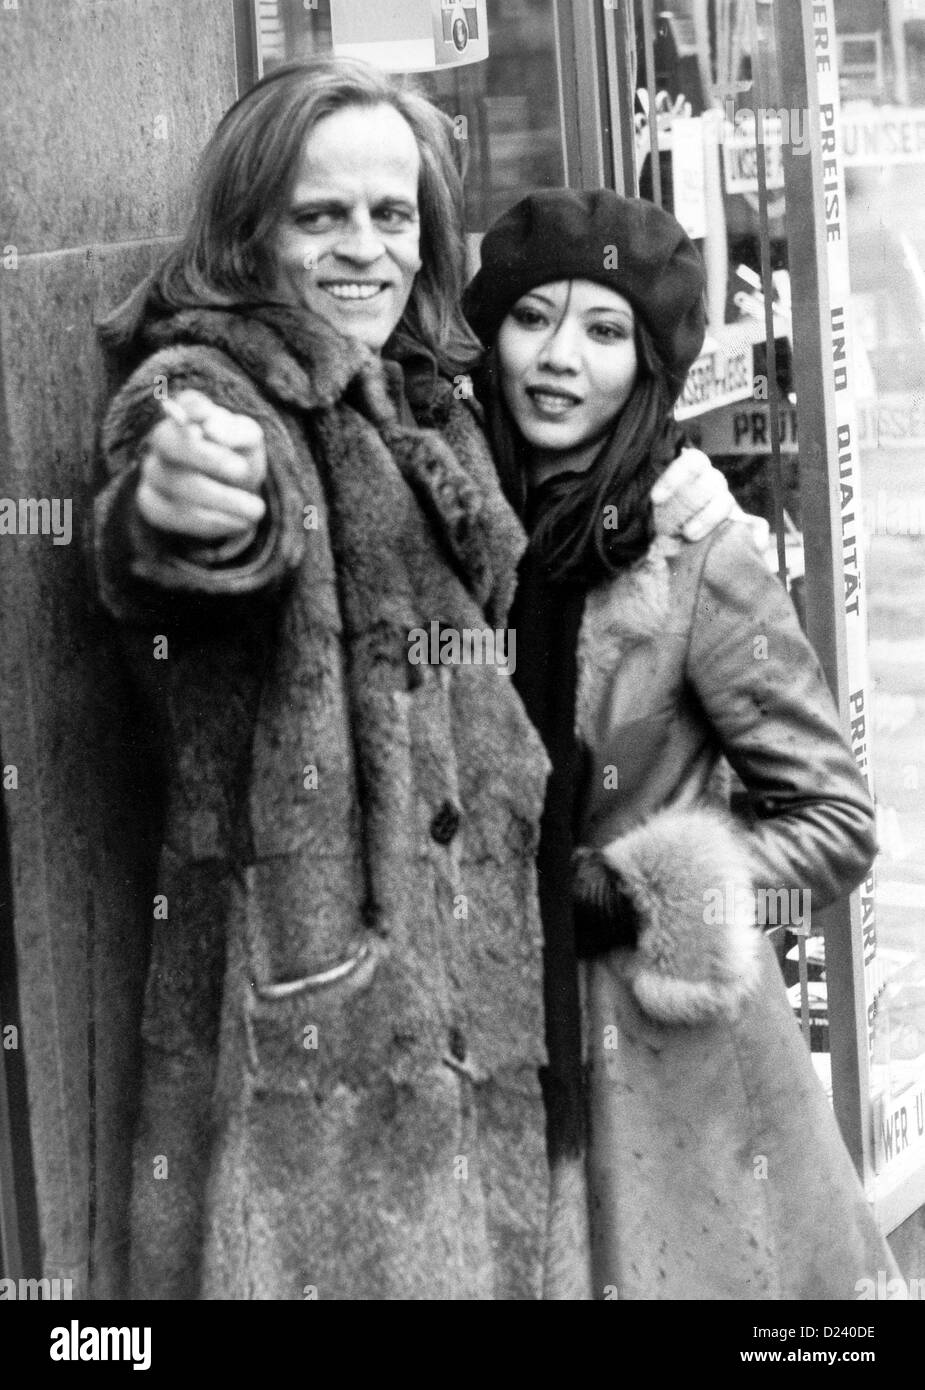 (dpa files) - German actor Klaus Kinski puts his arm around his third wife Vietnamese Genevieve Minhoi during walk in West Berlin 19 November 1971. enfant terrible of film industry Kinski s films include Doctor Zhivago (1965) For Few Dollars More (1966) as well as Aguirre der Zorn Gottes (Aguirre: Wrath of God) Nosferatu: Phantom der Nacht Nosferatu Vampire. Kinski was born on 18 October 1926 in Danzig Germany (now Gdansk Poland) under name of Nikolaus Guenther Nakszynski died on 23 November 1991 in Lagunitas California of heart attack. Stock Photo